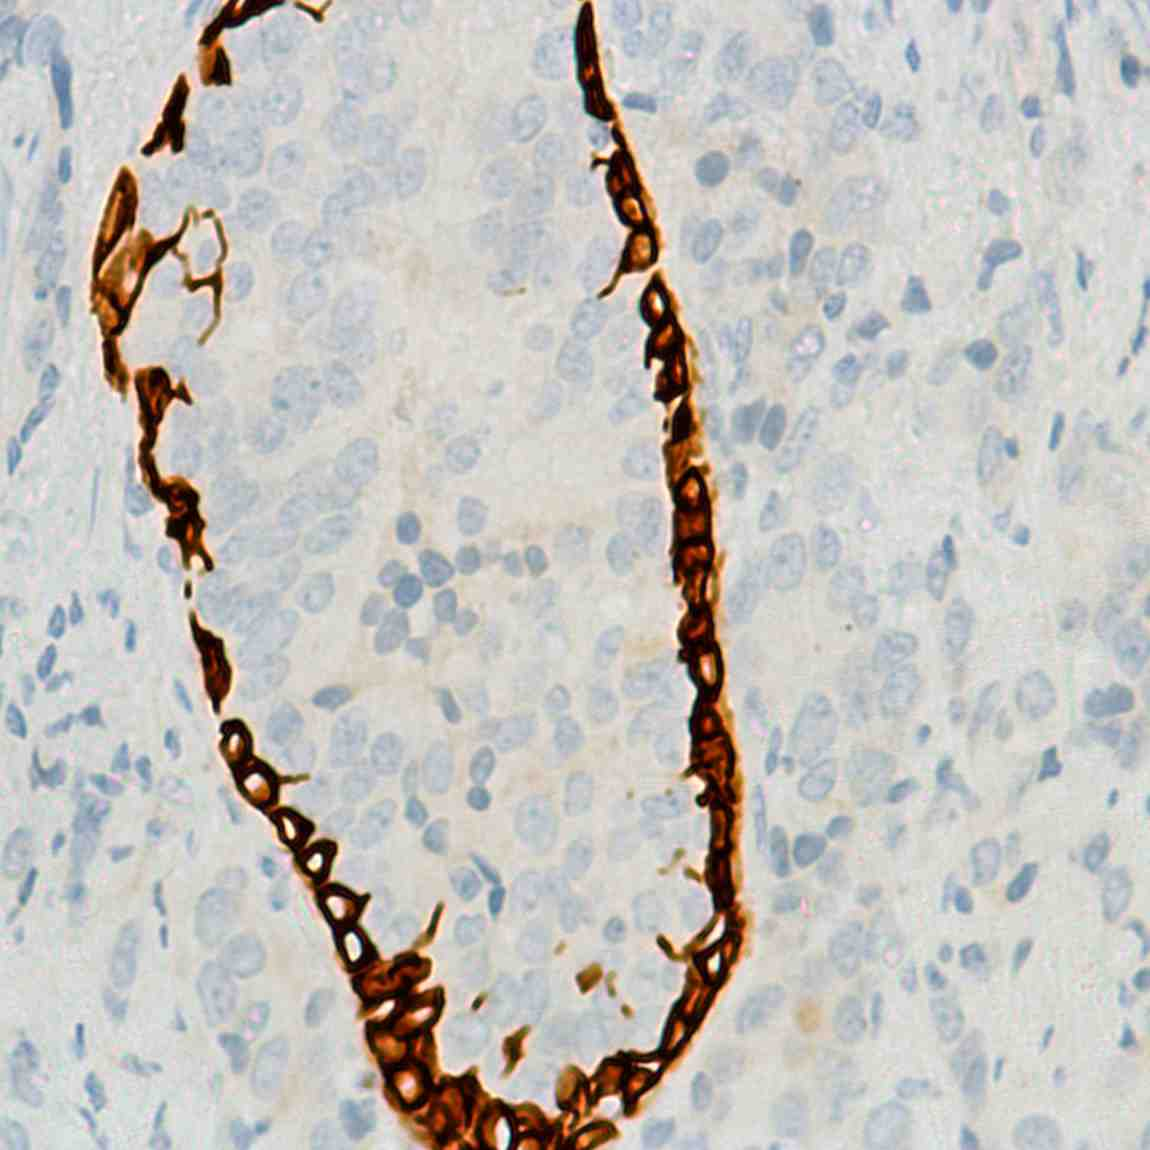 Human Prostate Carcinoma stained with anti-Keratin 6 antibody